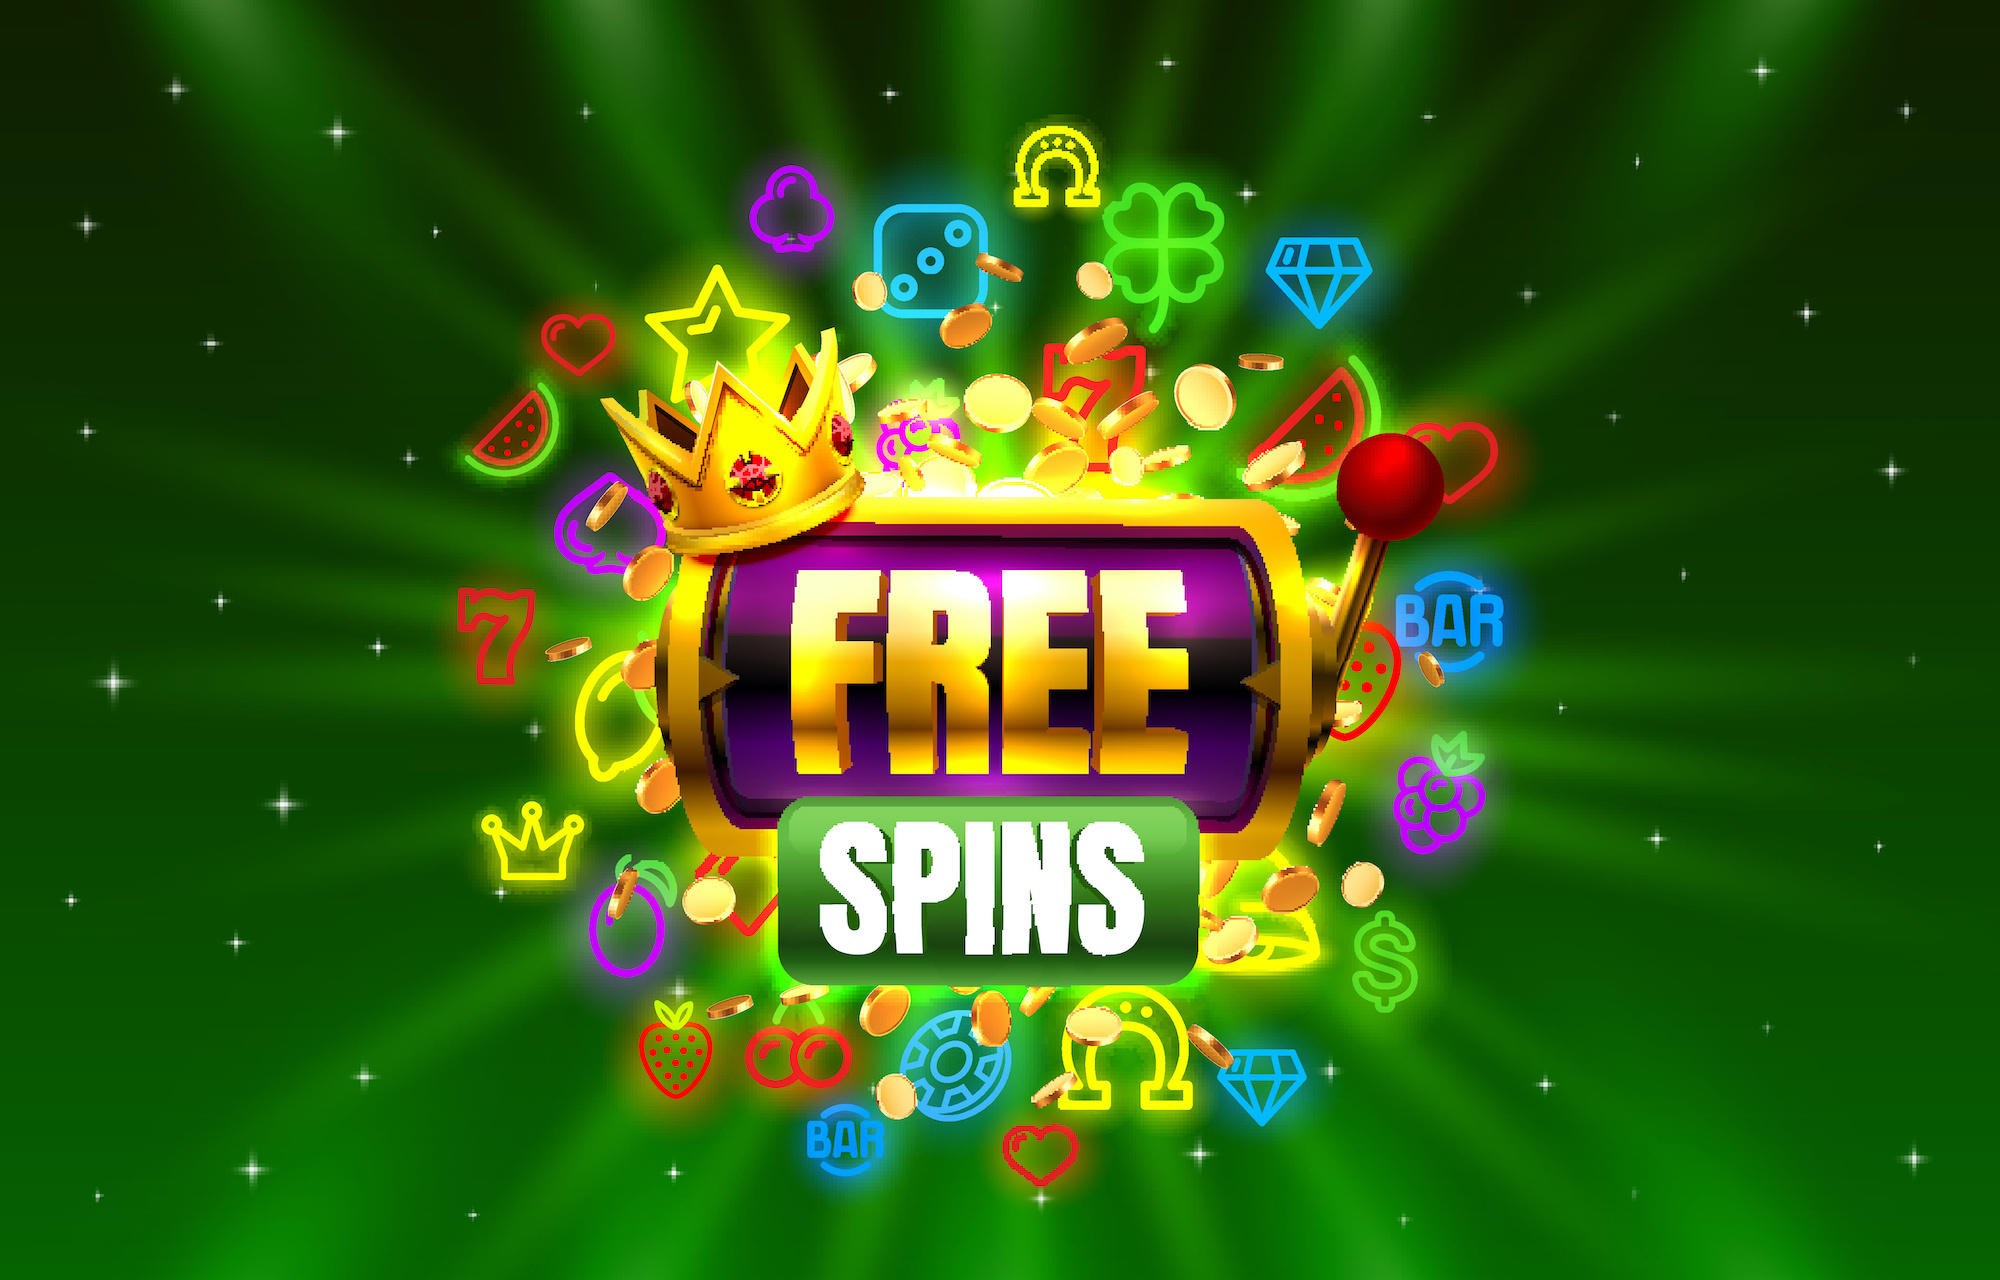 Get your free spins playing Gold Rush Gus online at Joe Fortune